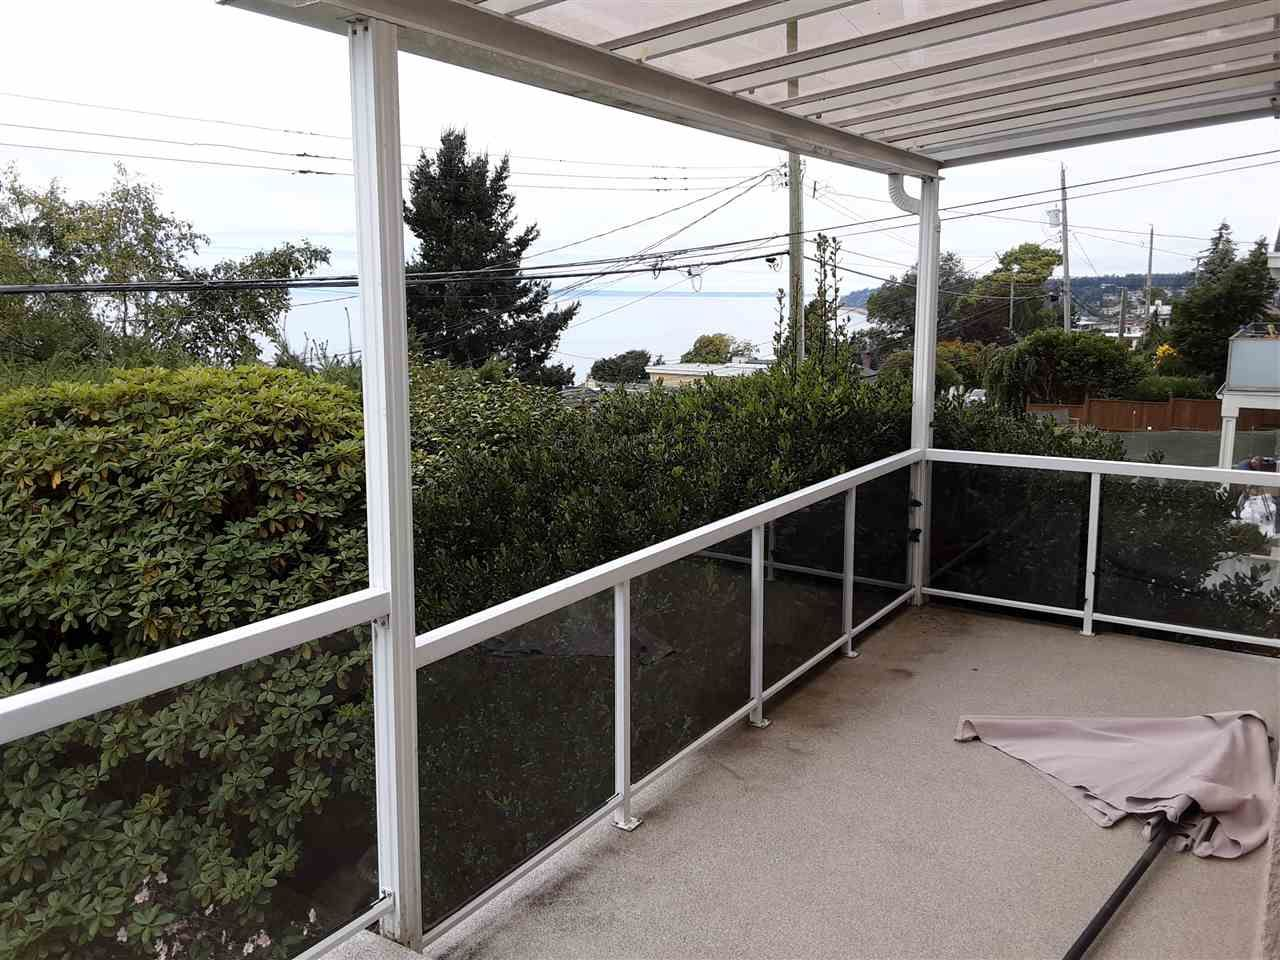 Photo 16: Photos: 15291 COLUMBIA Avenue: White Rock House for sale (South Surrey White Rock)  : MLS®# R2492863